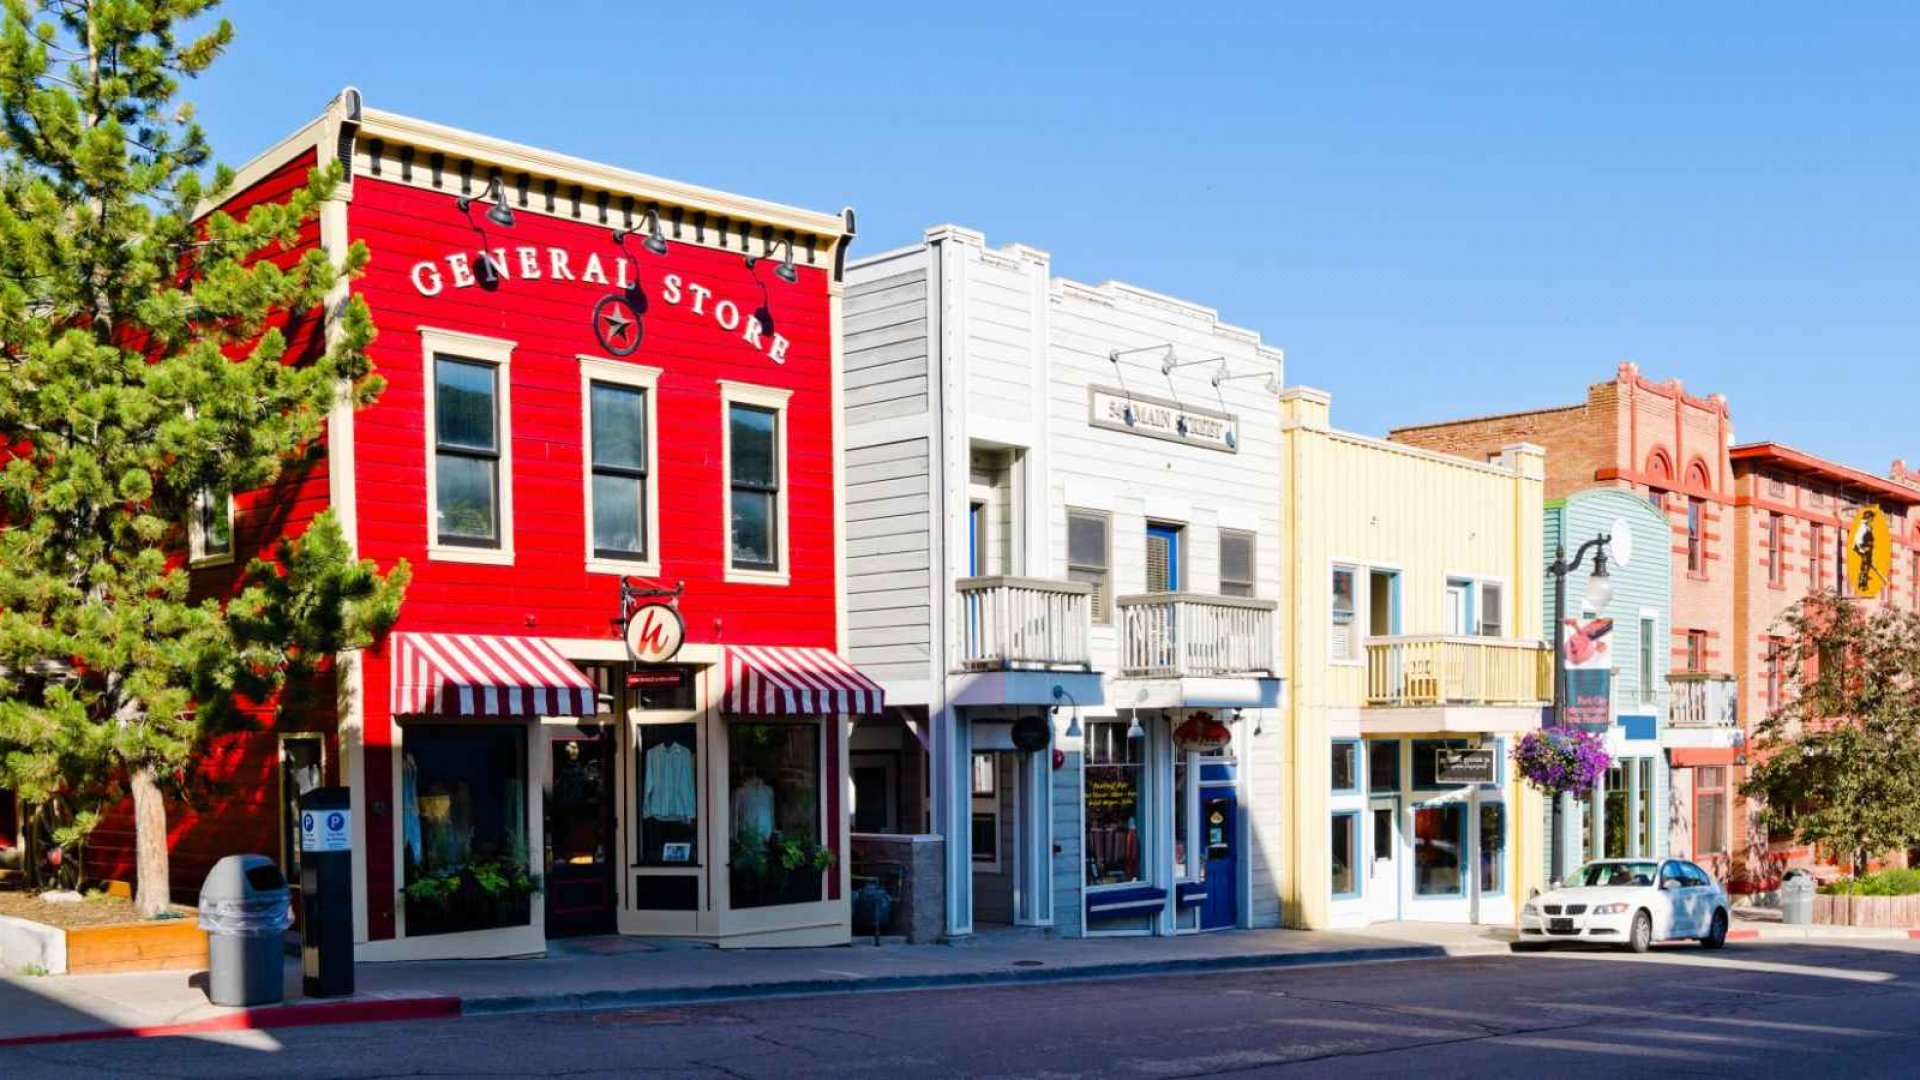 Shop small this Saturday - revitalize your Main Street.